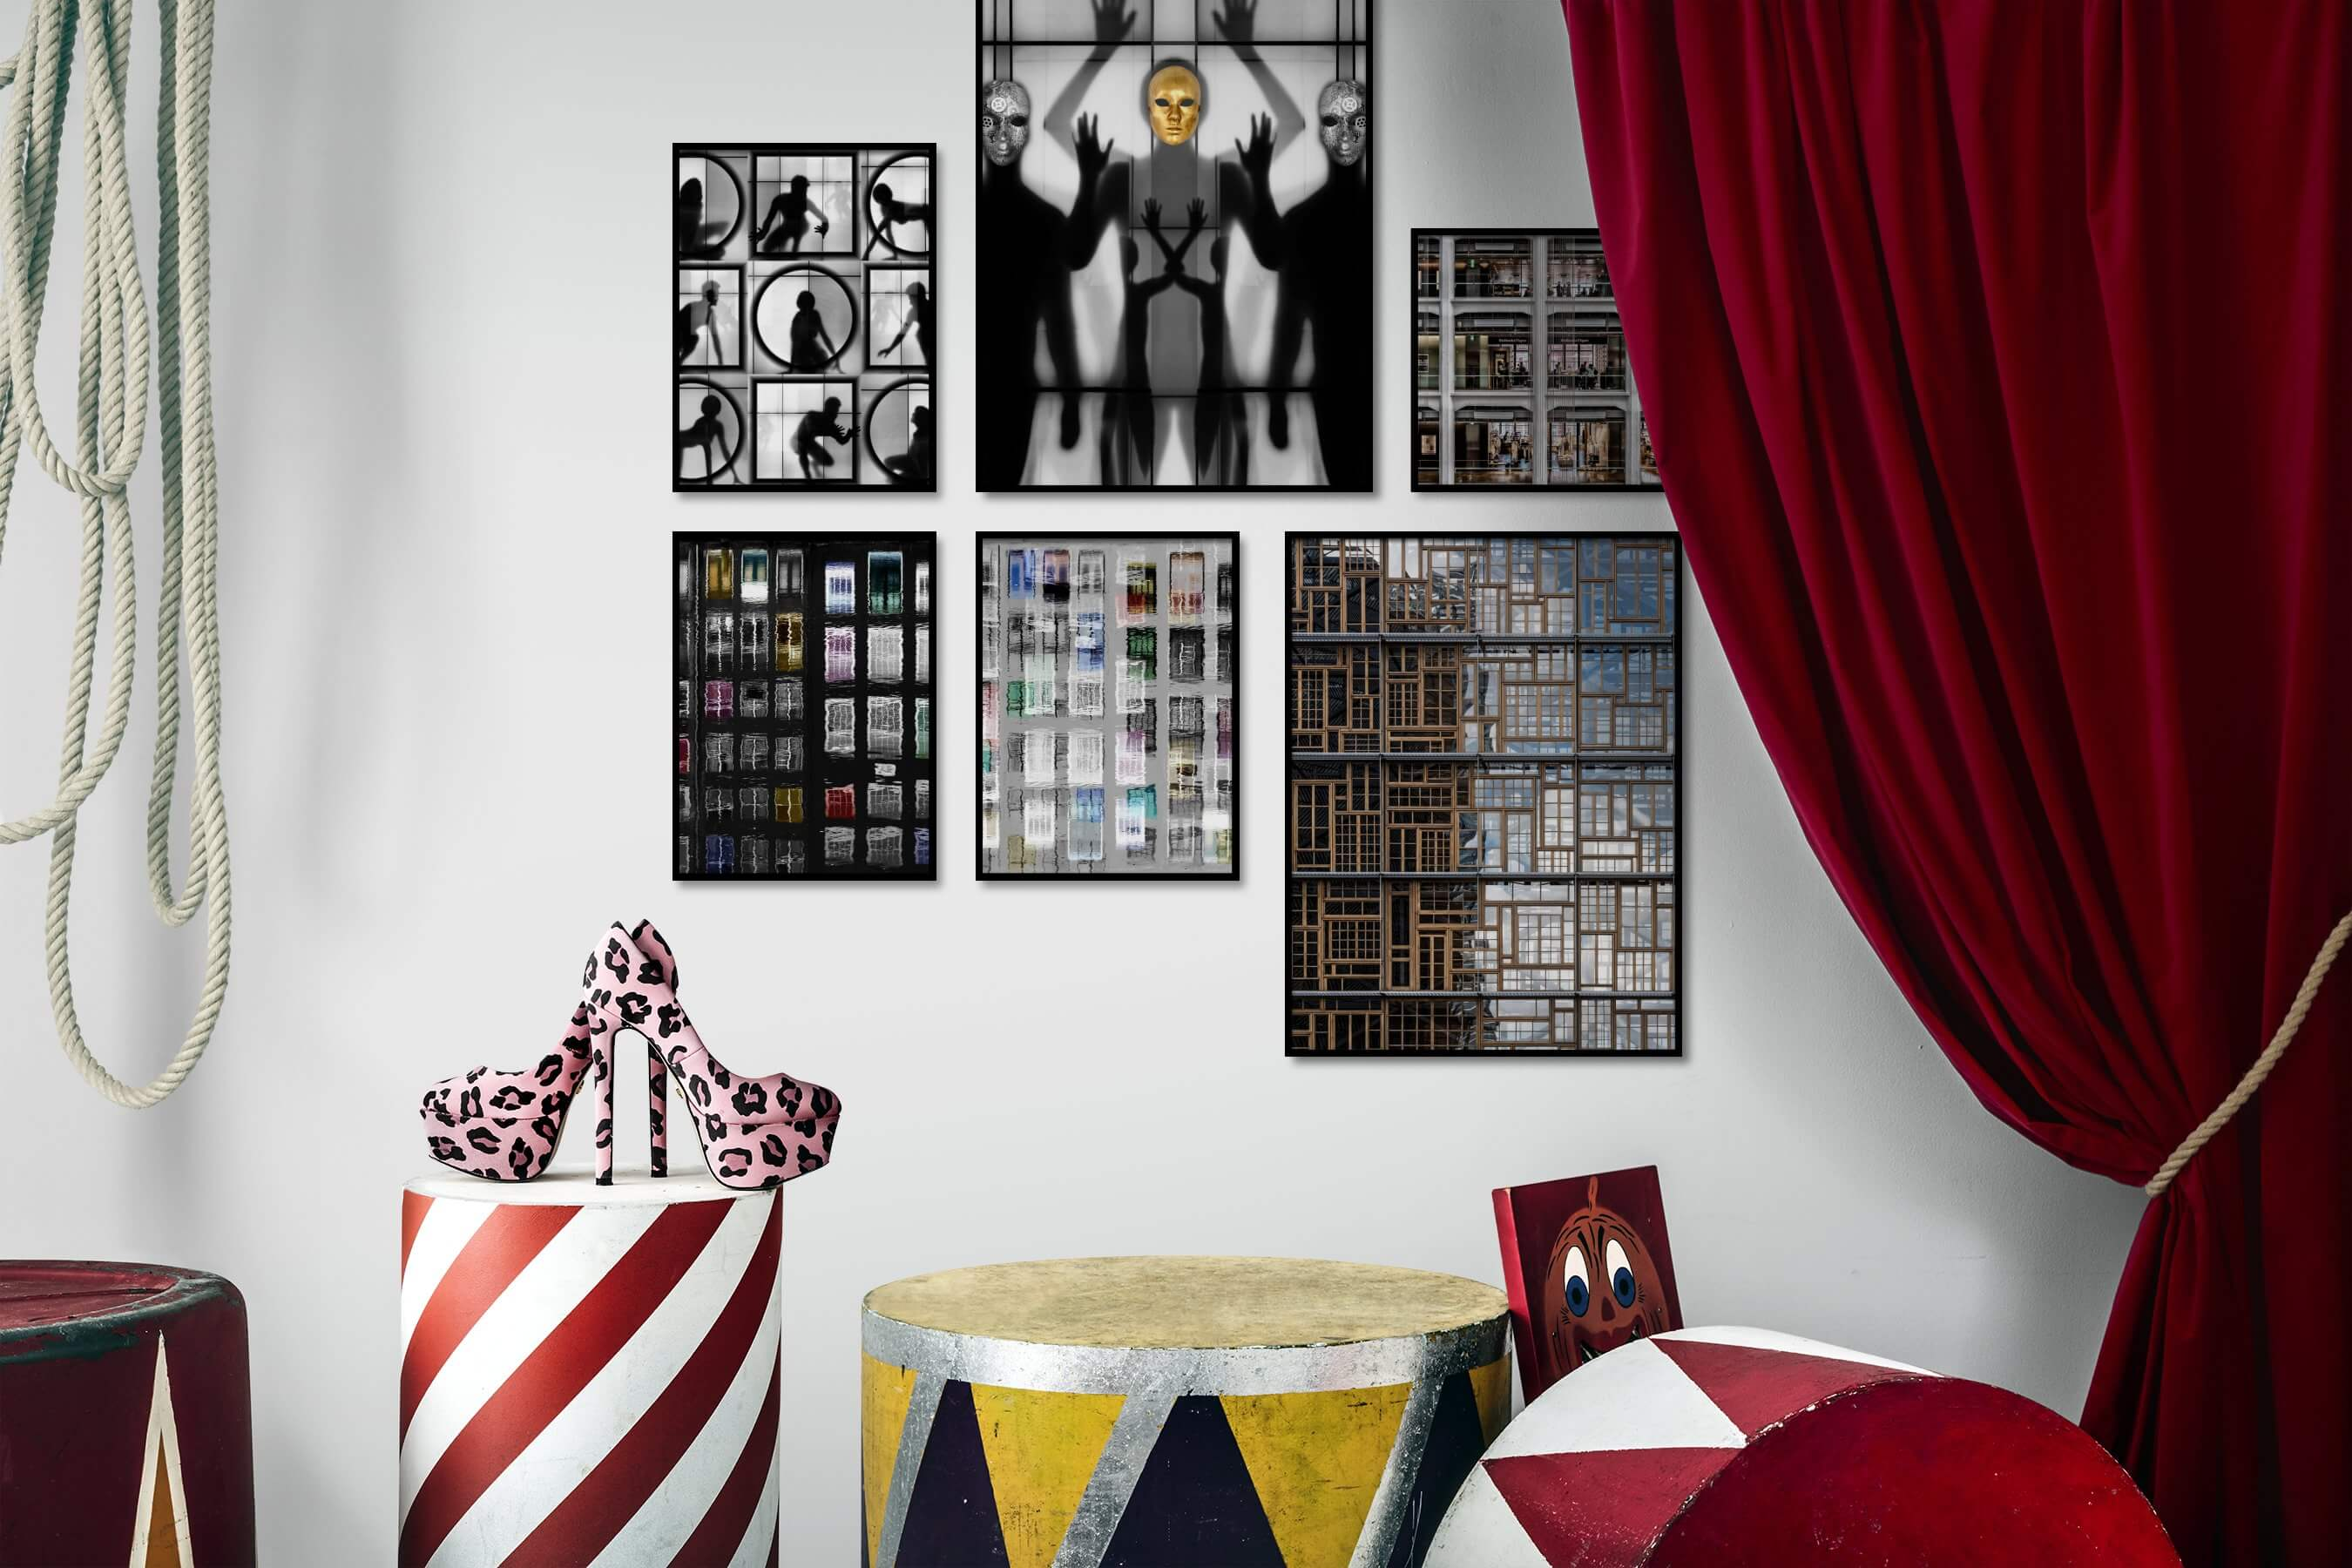 Gallery wall idea with six framed pictures arranged on a wall depicting Artsy, Black & White, For the Maximalist, and City Life